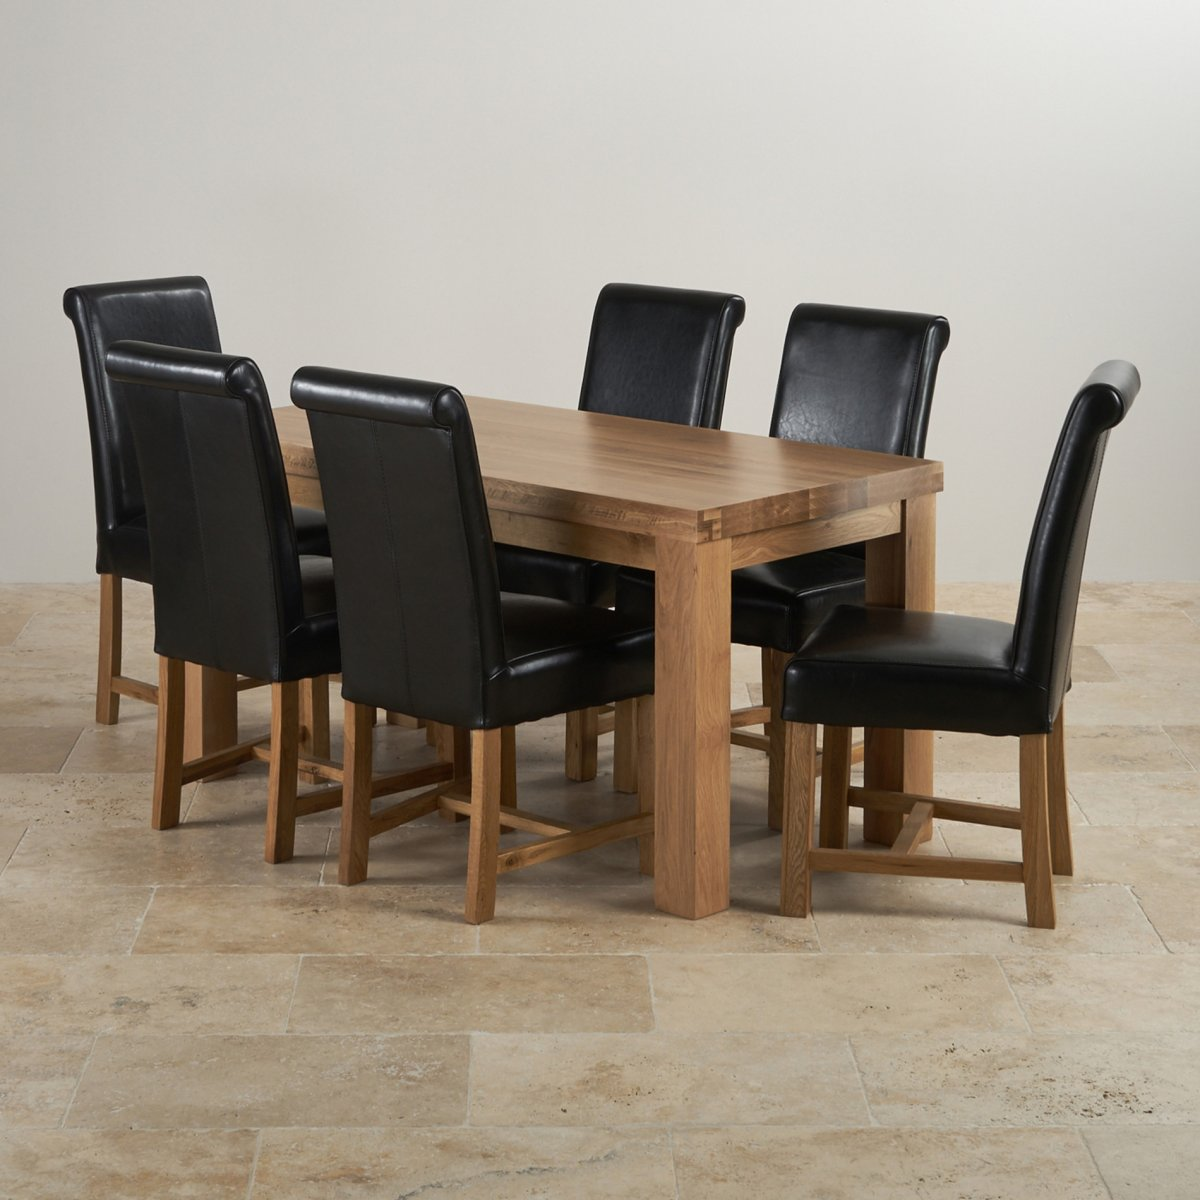 Leather Dining Set: Fresco Dining Set: 5ft Oak Dining Table + 6 Black Leather